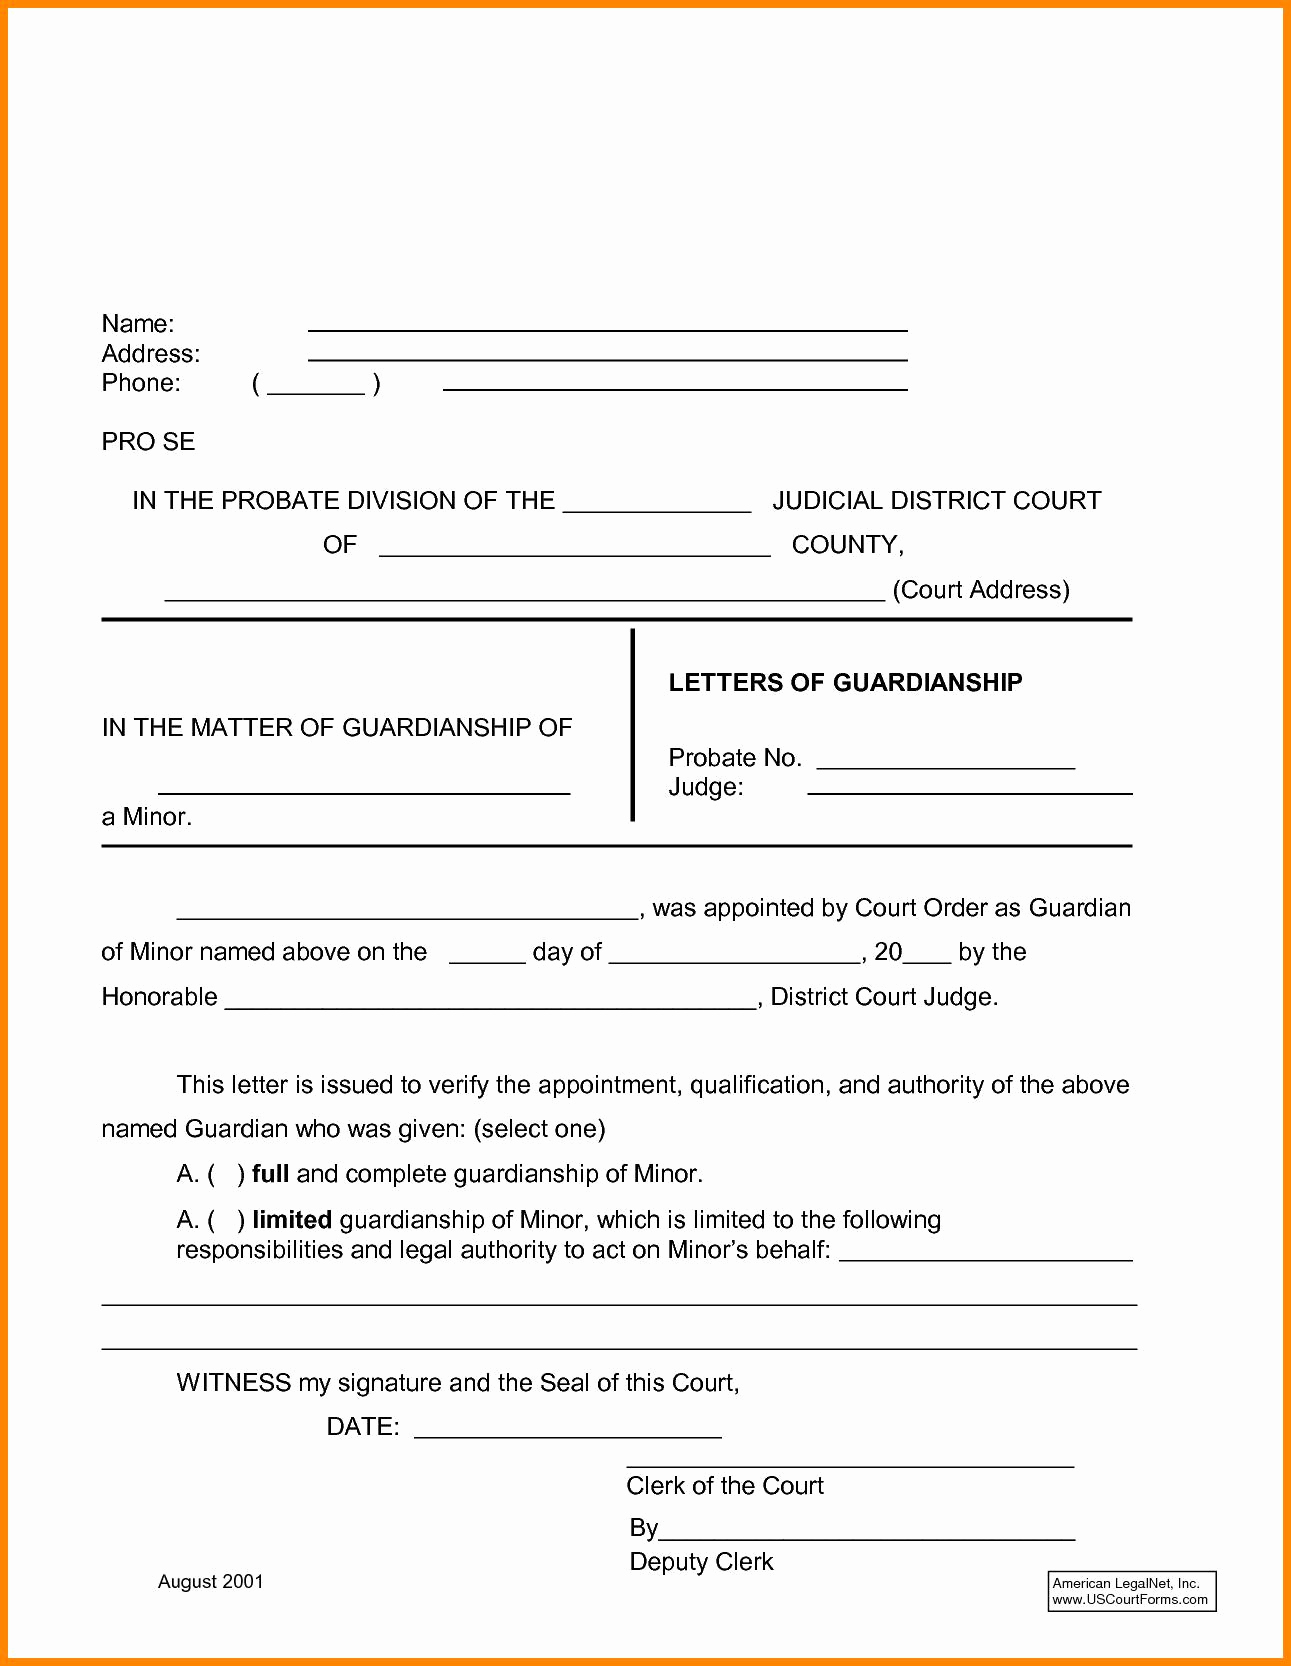 Permanent Guardianship Letter Template - Temporary Guardianship Agreement form Temporary Custody Letter